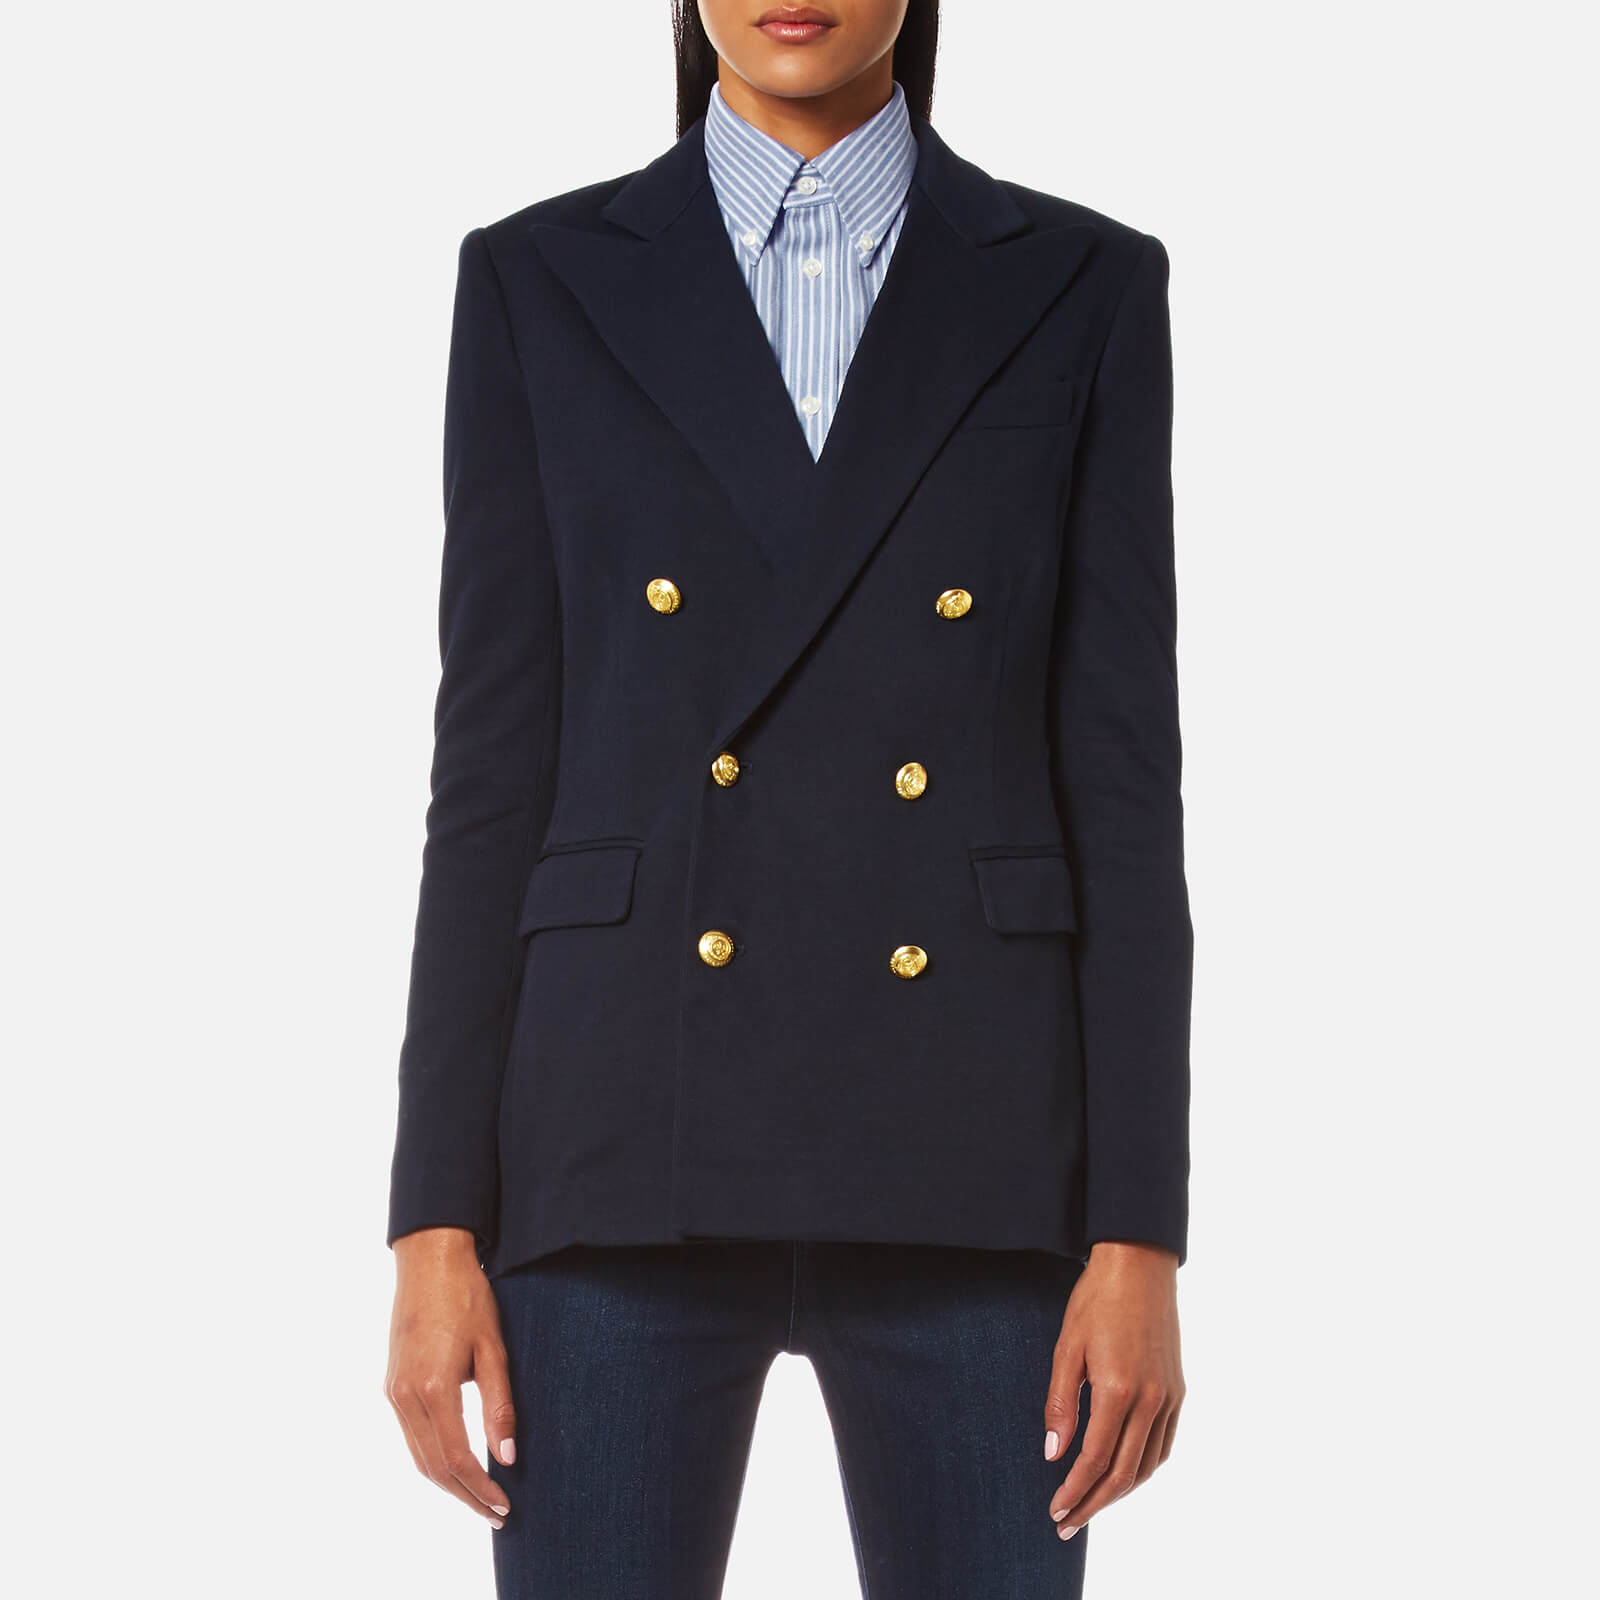 9491037c Polo Ralph Lauren Women's Double Breasted Blazer - Aviator Navy - Free UK  Delivery over £50